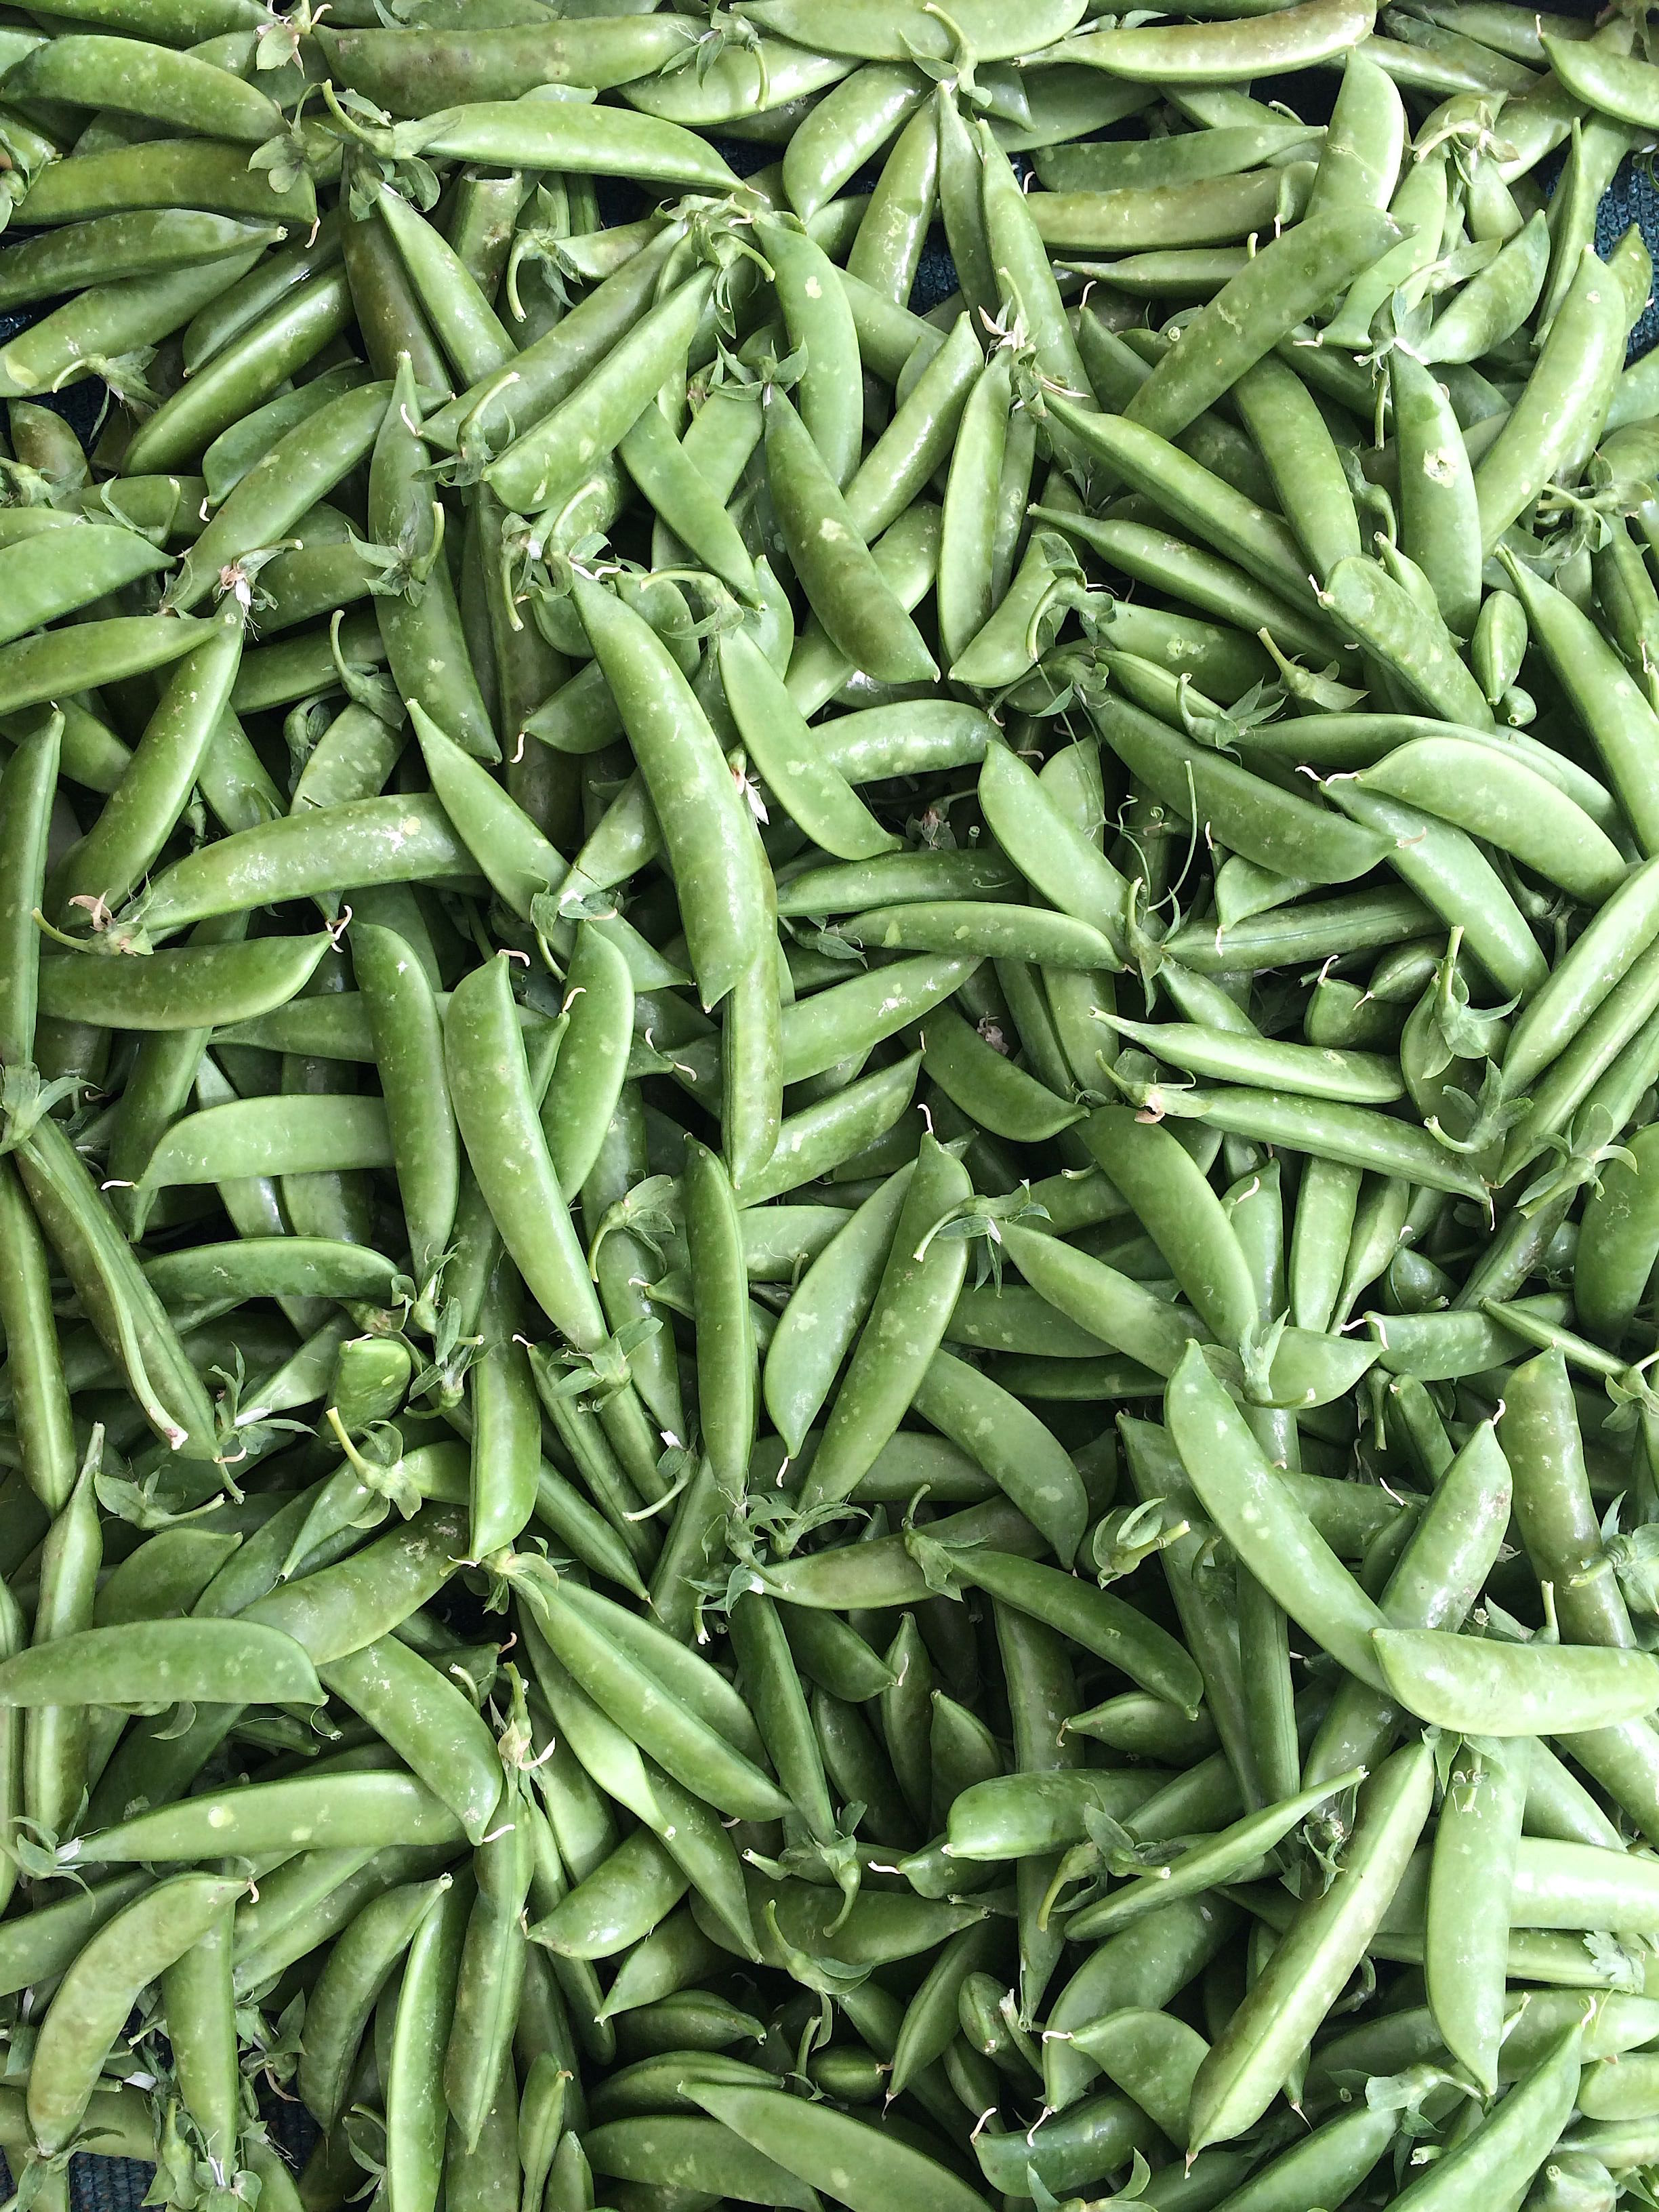 This season, snap peas have been wonderfully sweet and crunchy - these from Happy Boy Farm at the Berkeley Farmers Market.